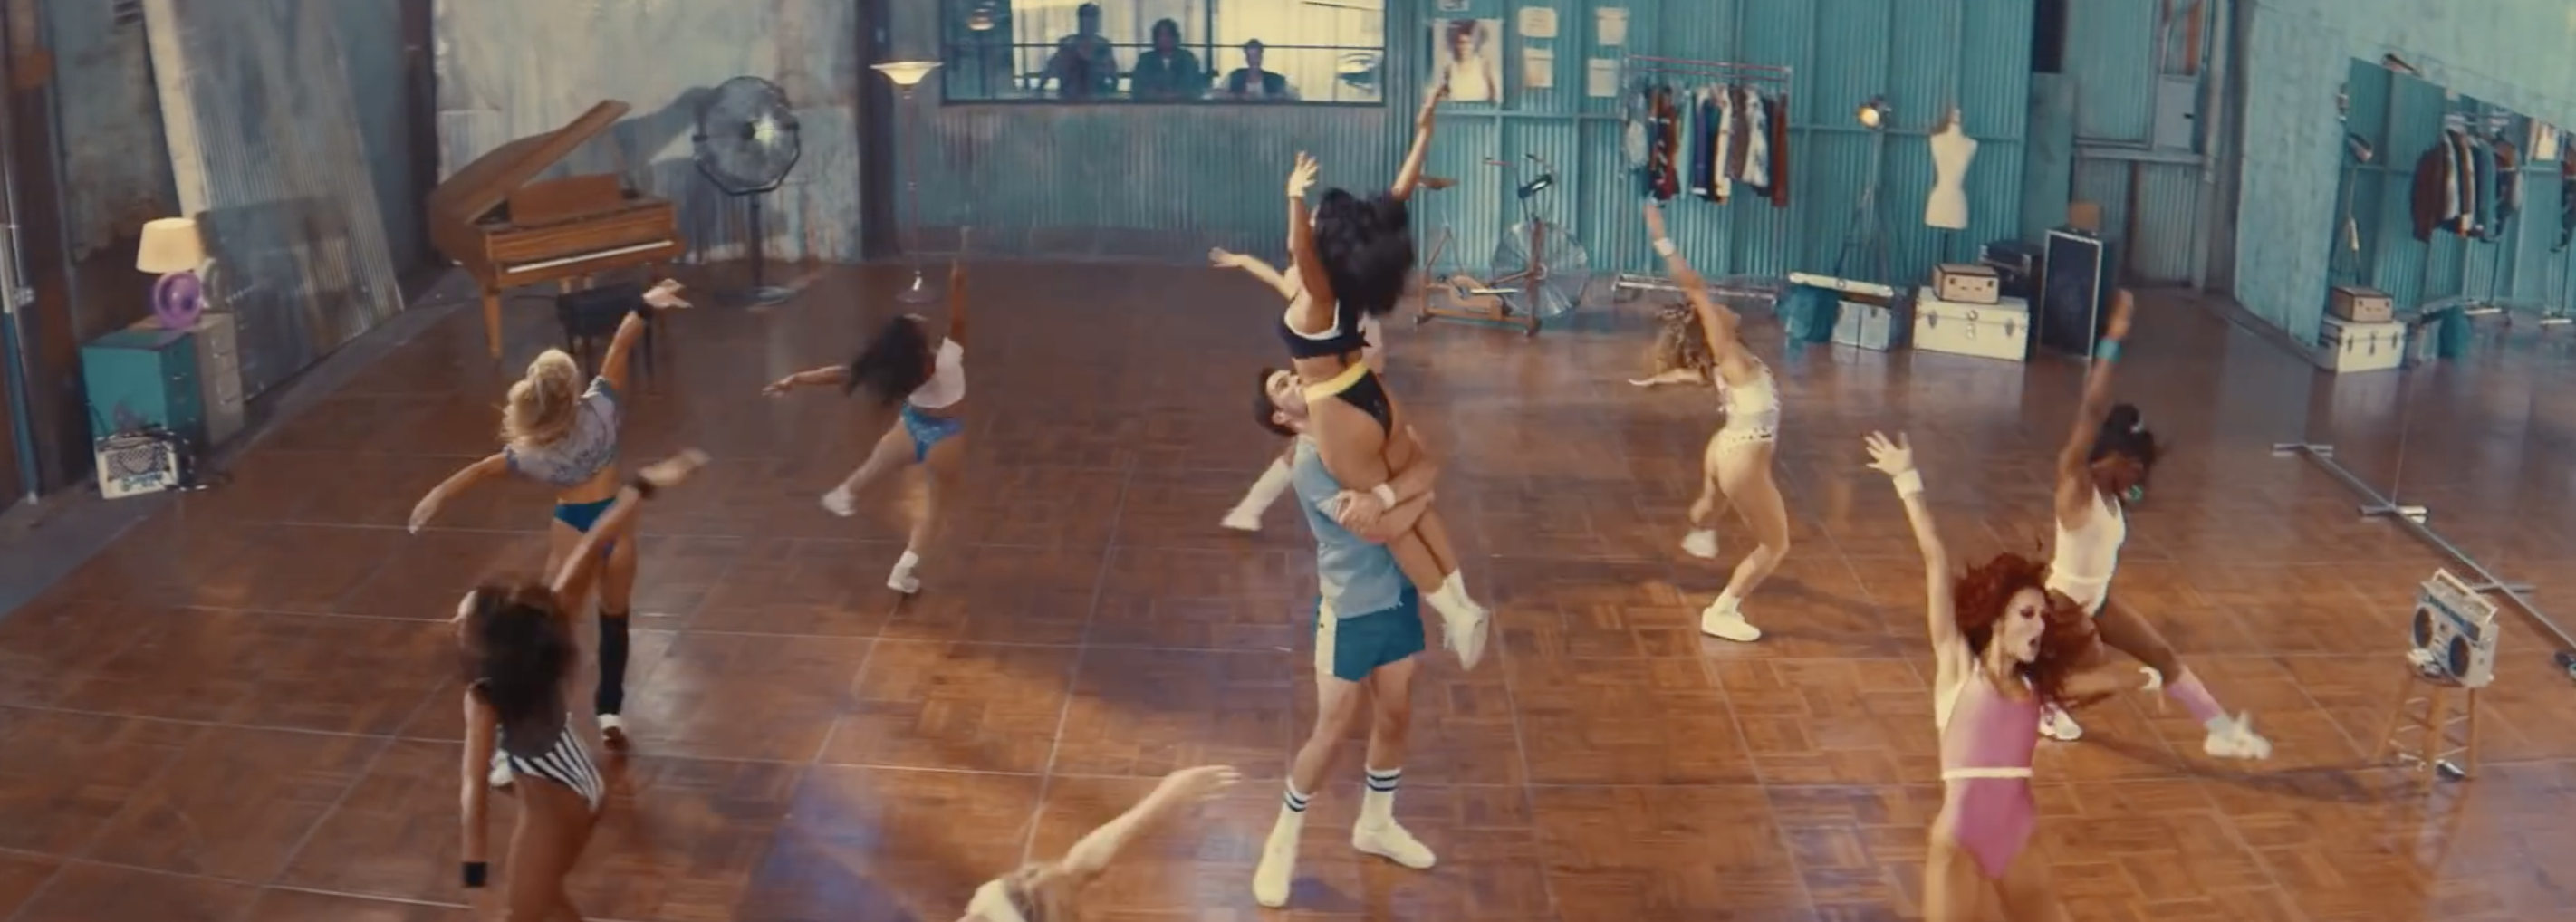 Clip - Kygo - Higher Love - Années 80 - Dirty Dancing